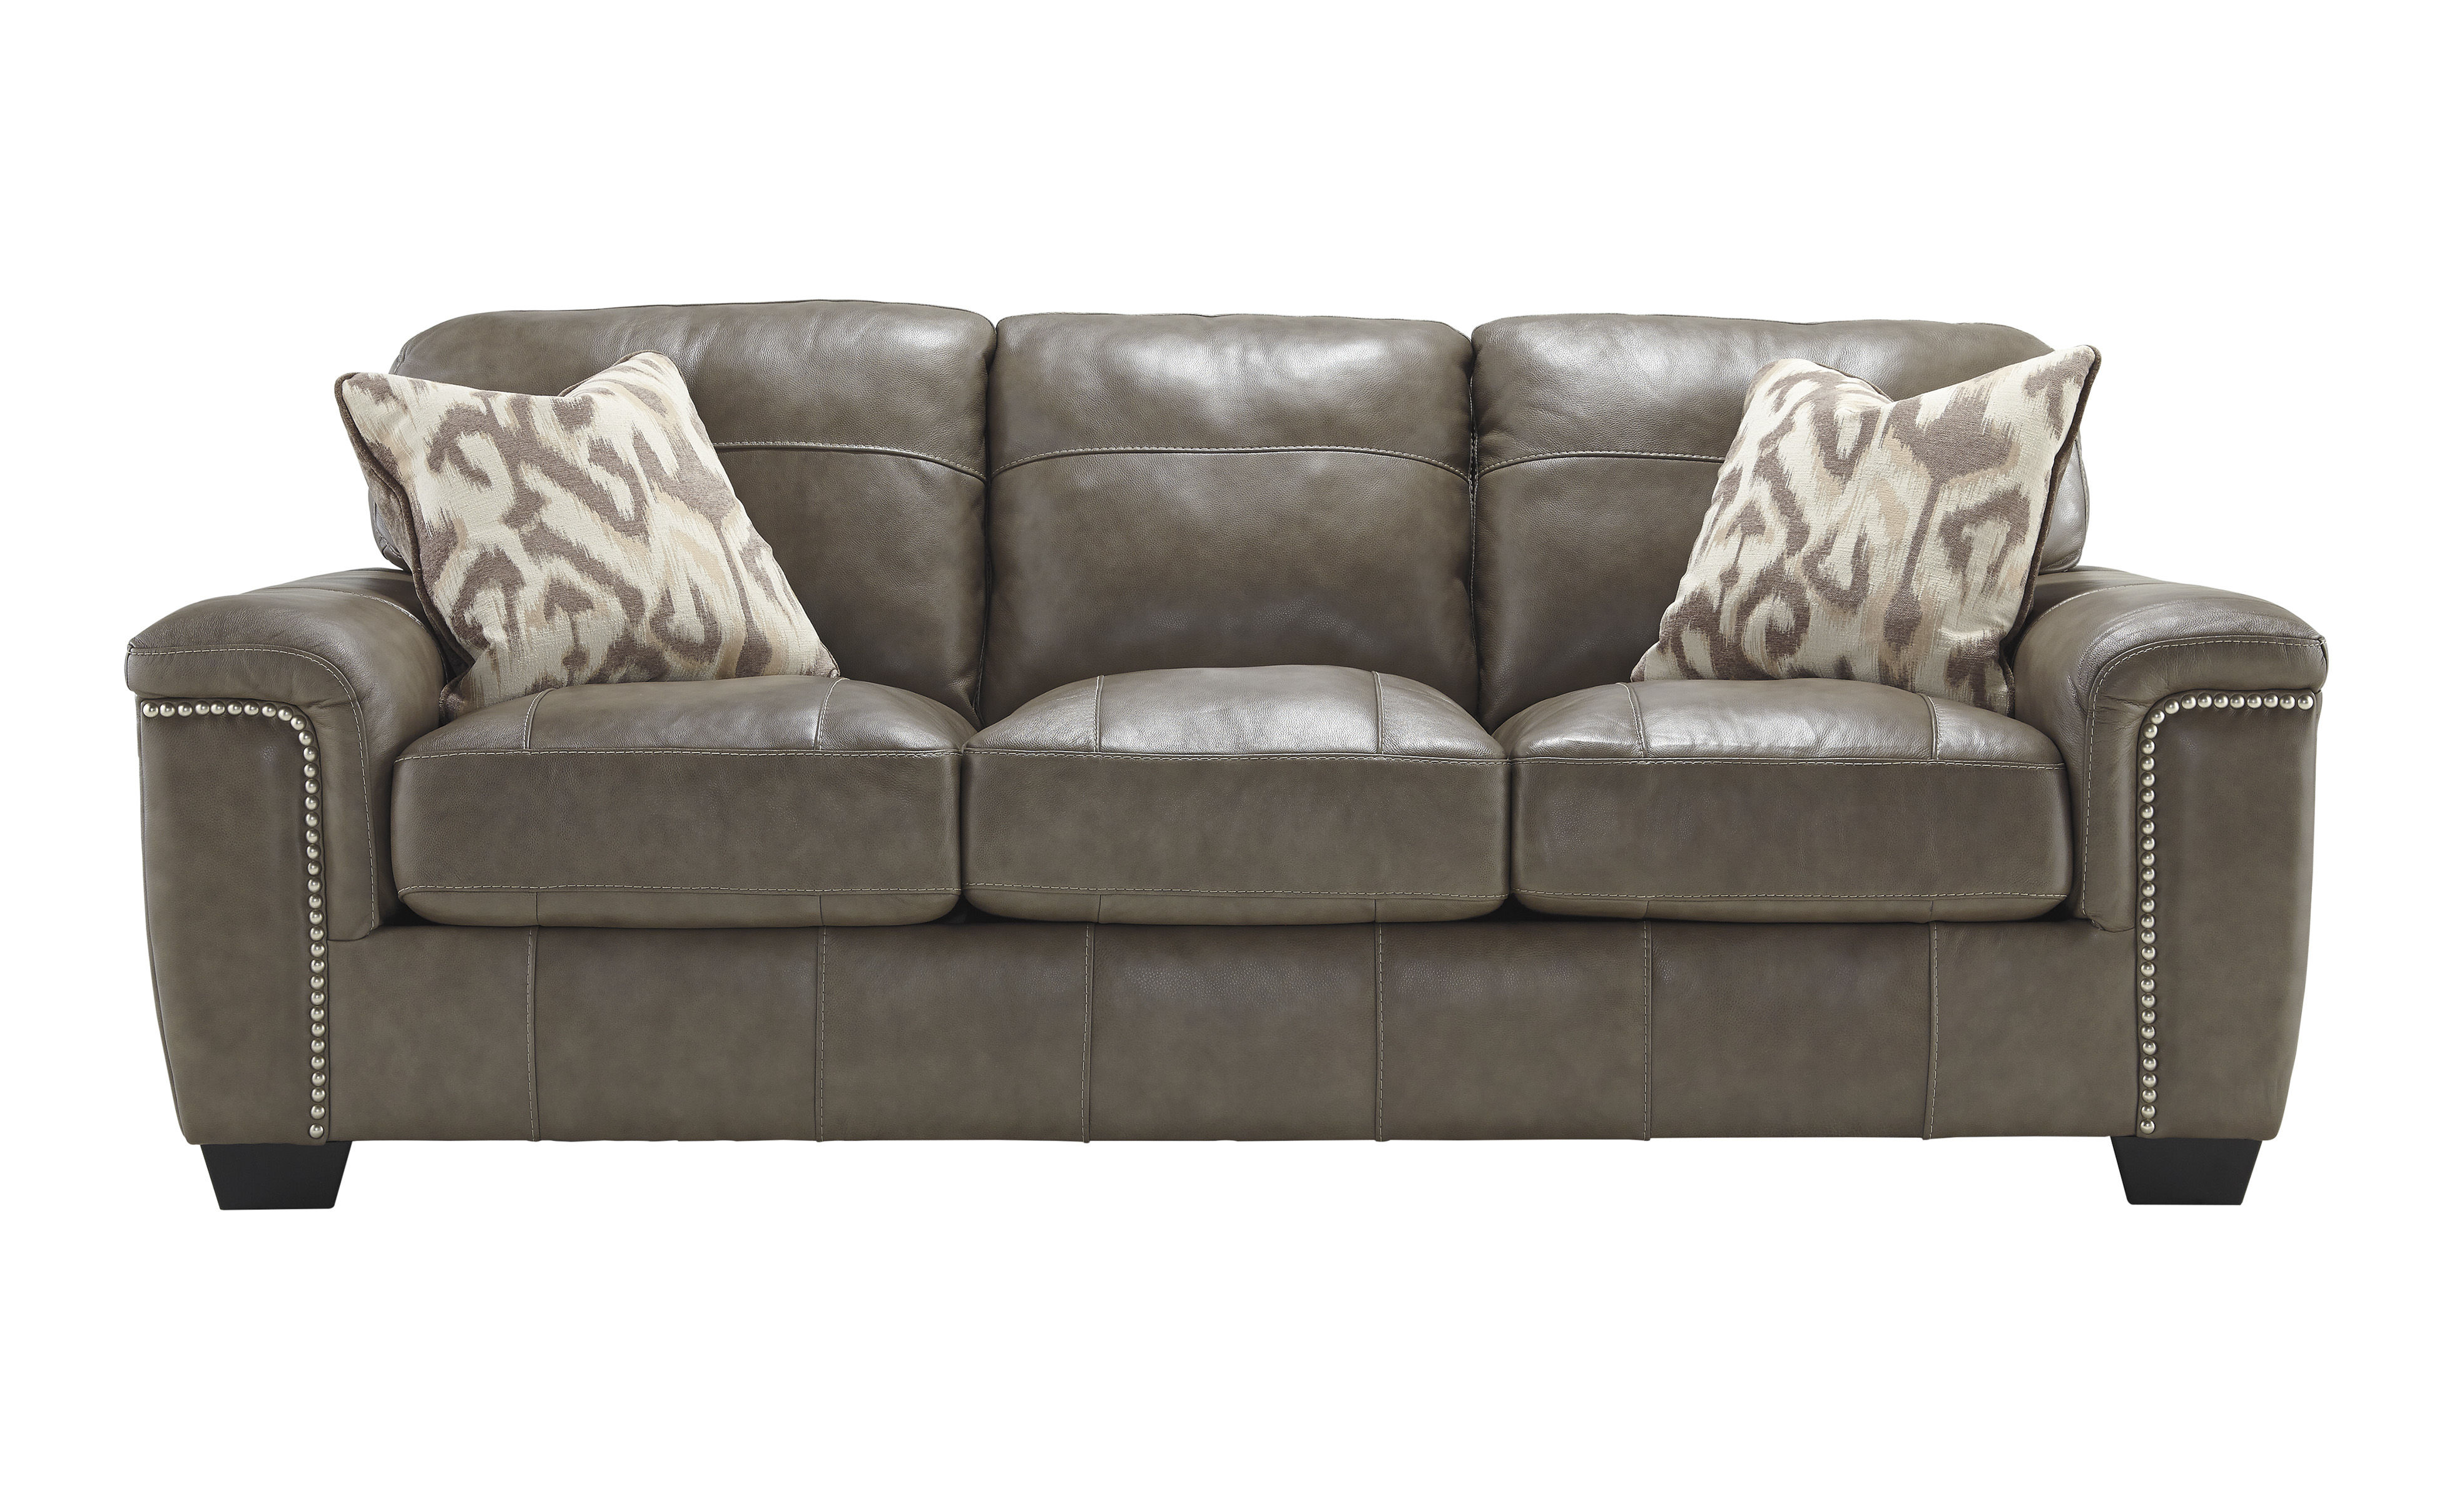 Miraculous Donnell Contemporary Granite Leather Fabric Sofa The Squirreltailoven Fun Painted Chair Ideas Images Squirreltailovenorg